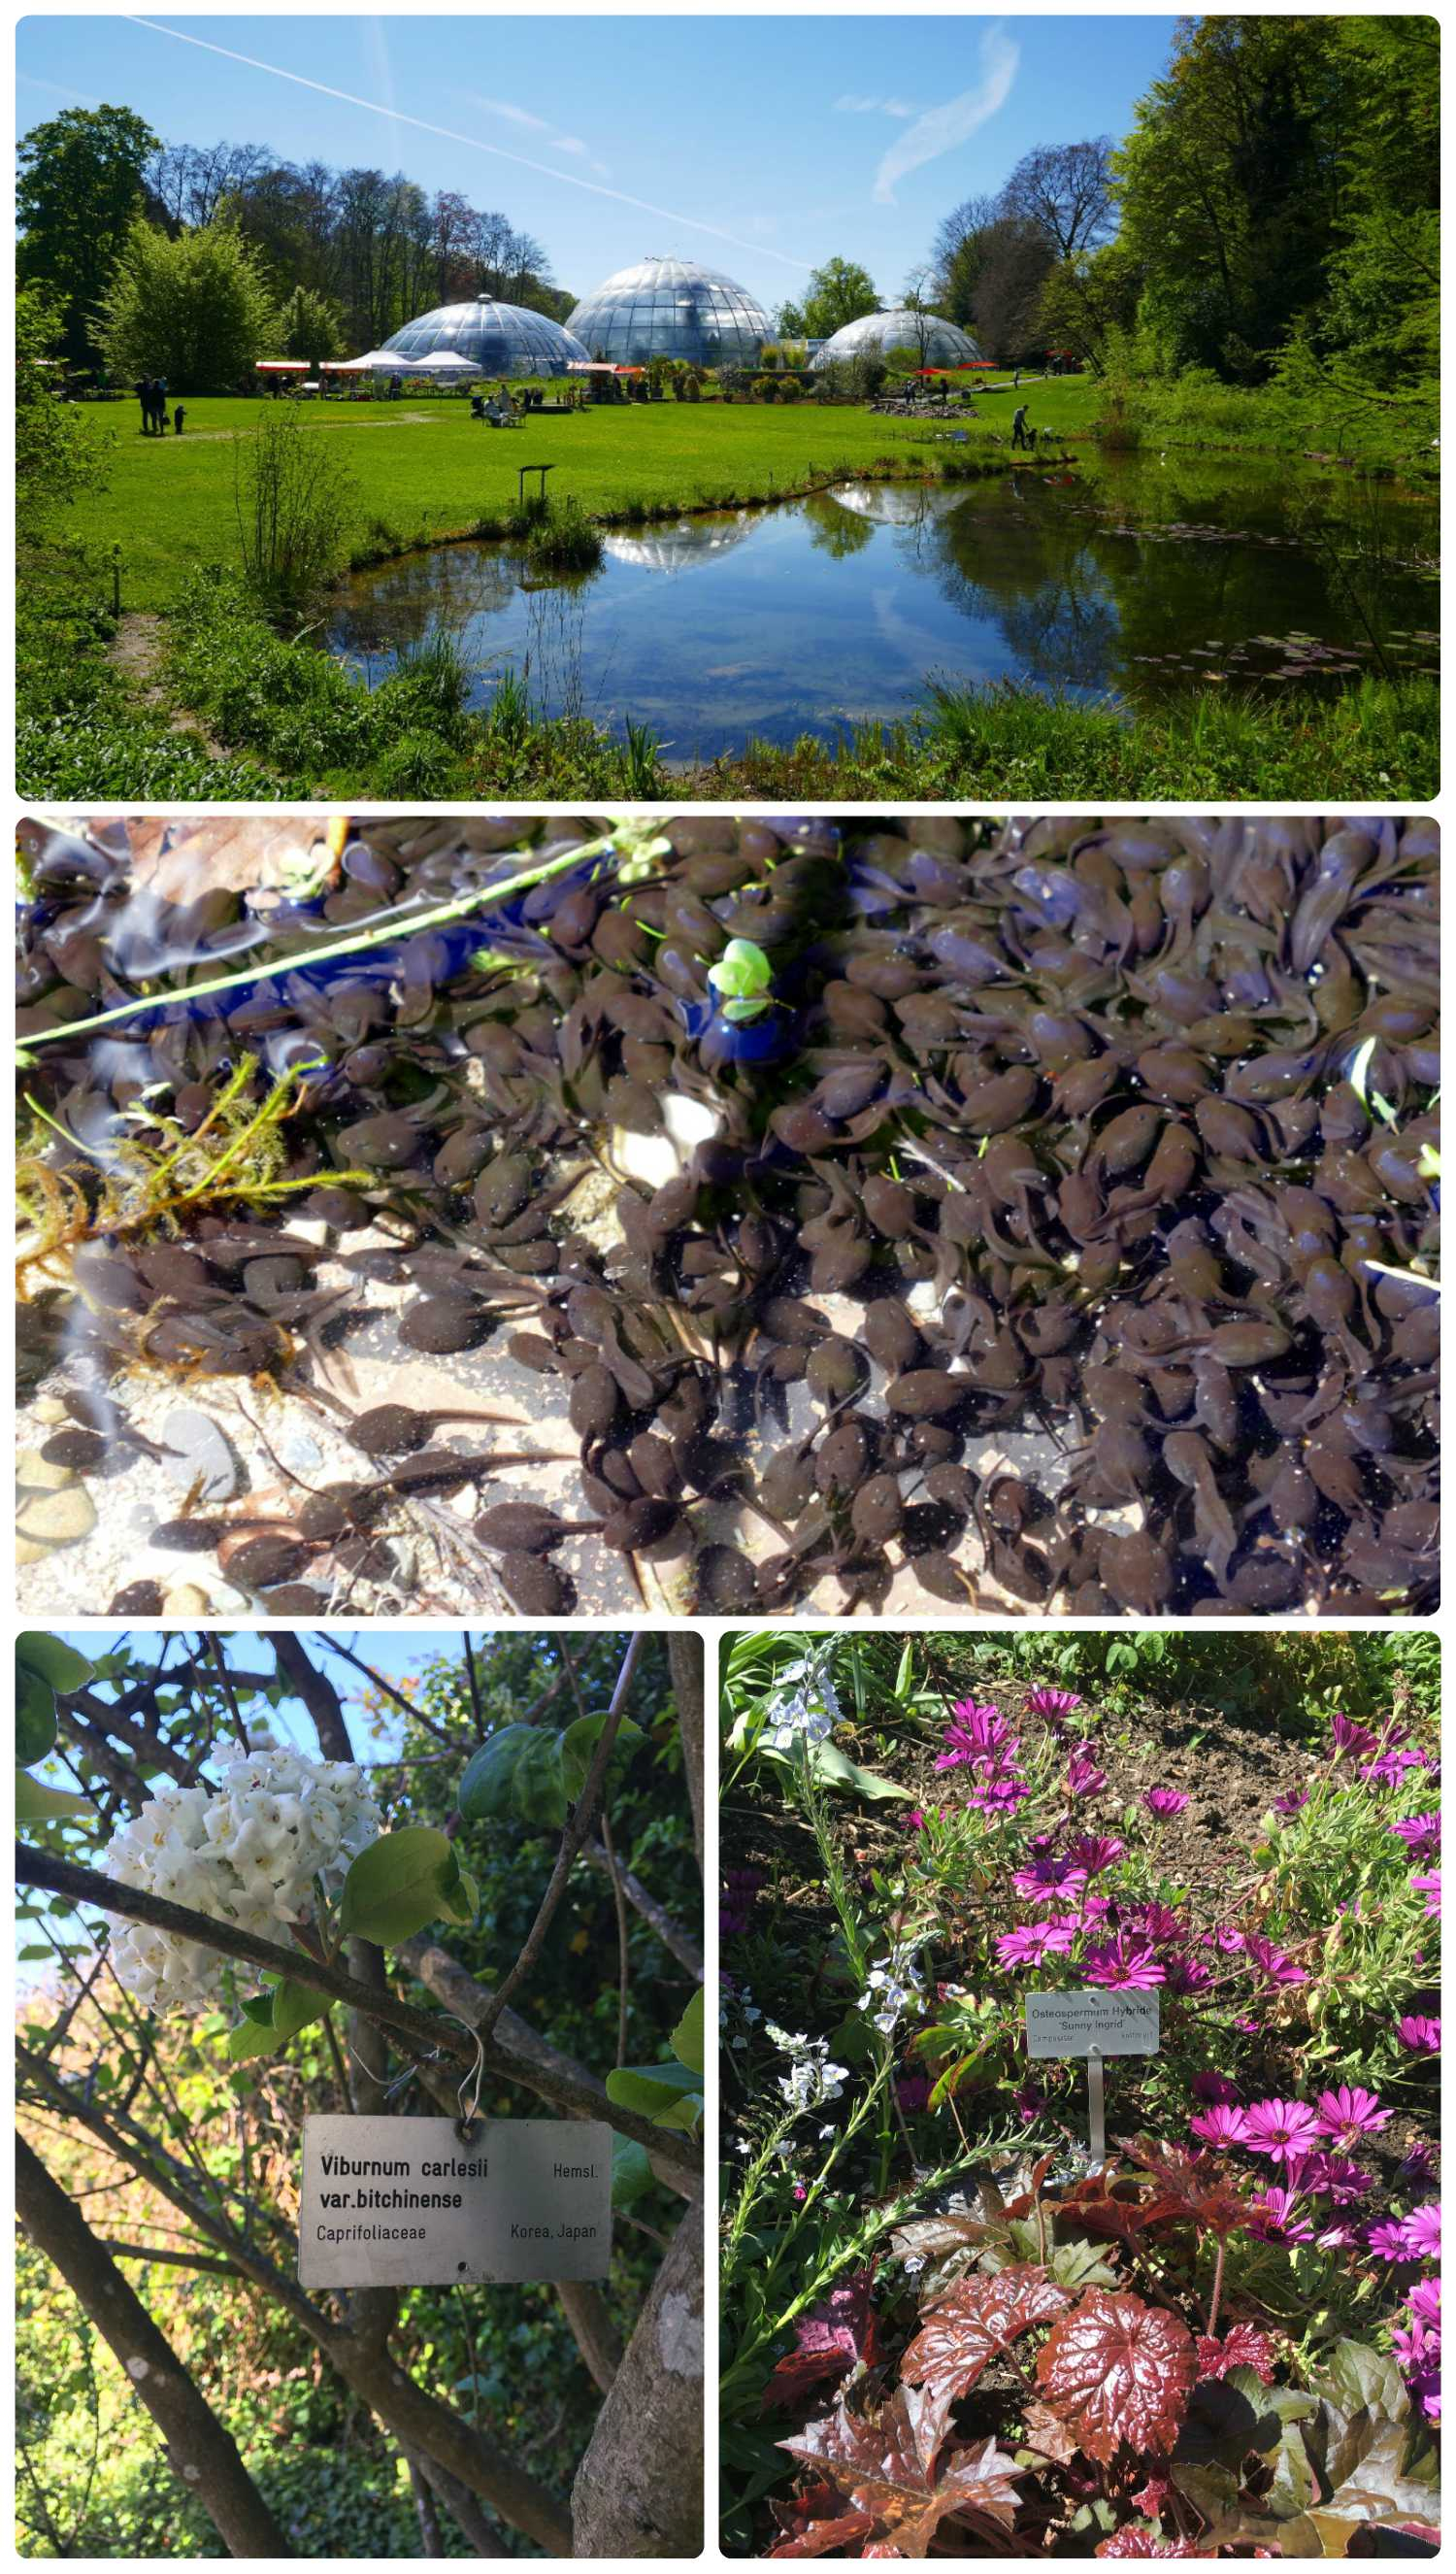 All images are of the Botanical Gardens. Top to bottom: Green house domes reflecting in the pond, after a closer look we saw thousands of tadpoles in the pond, (bottom two images) showing how everything seemed to be well labeled.